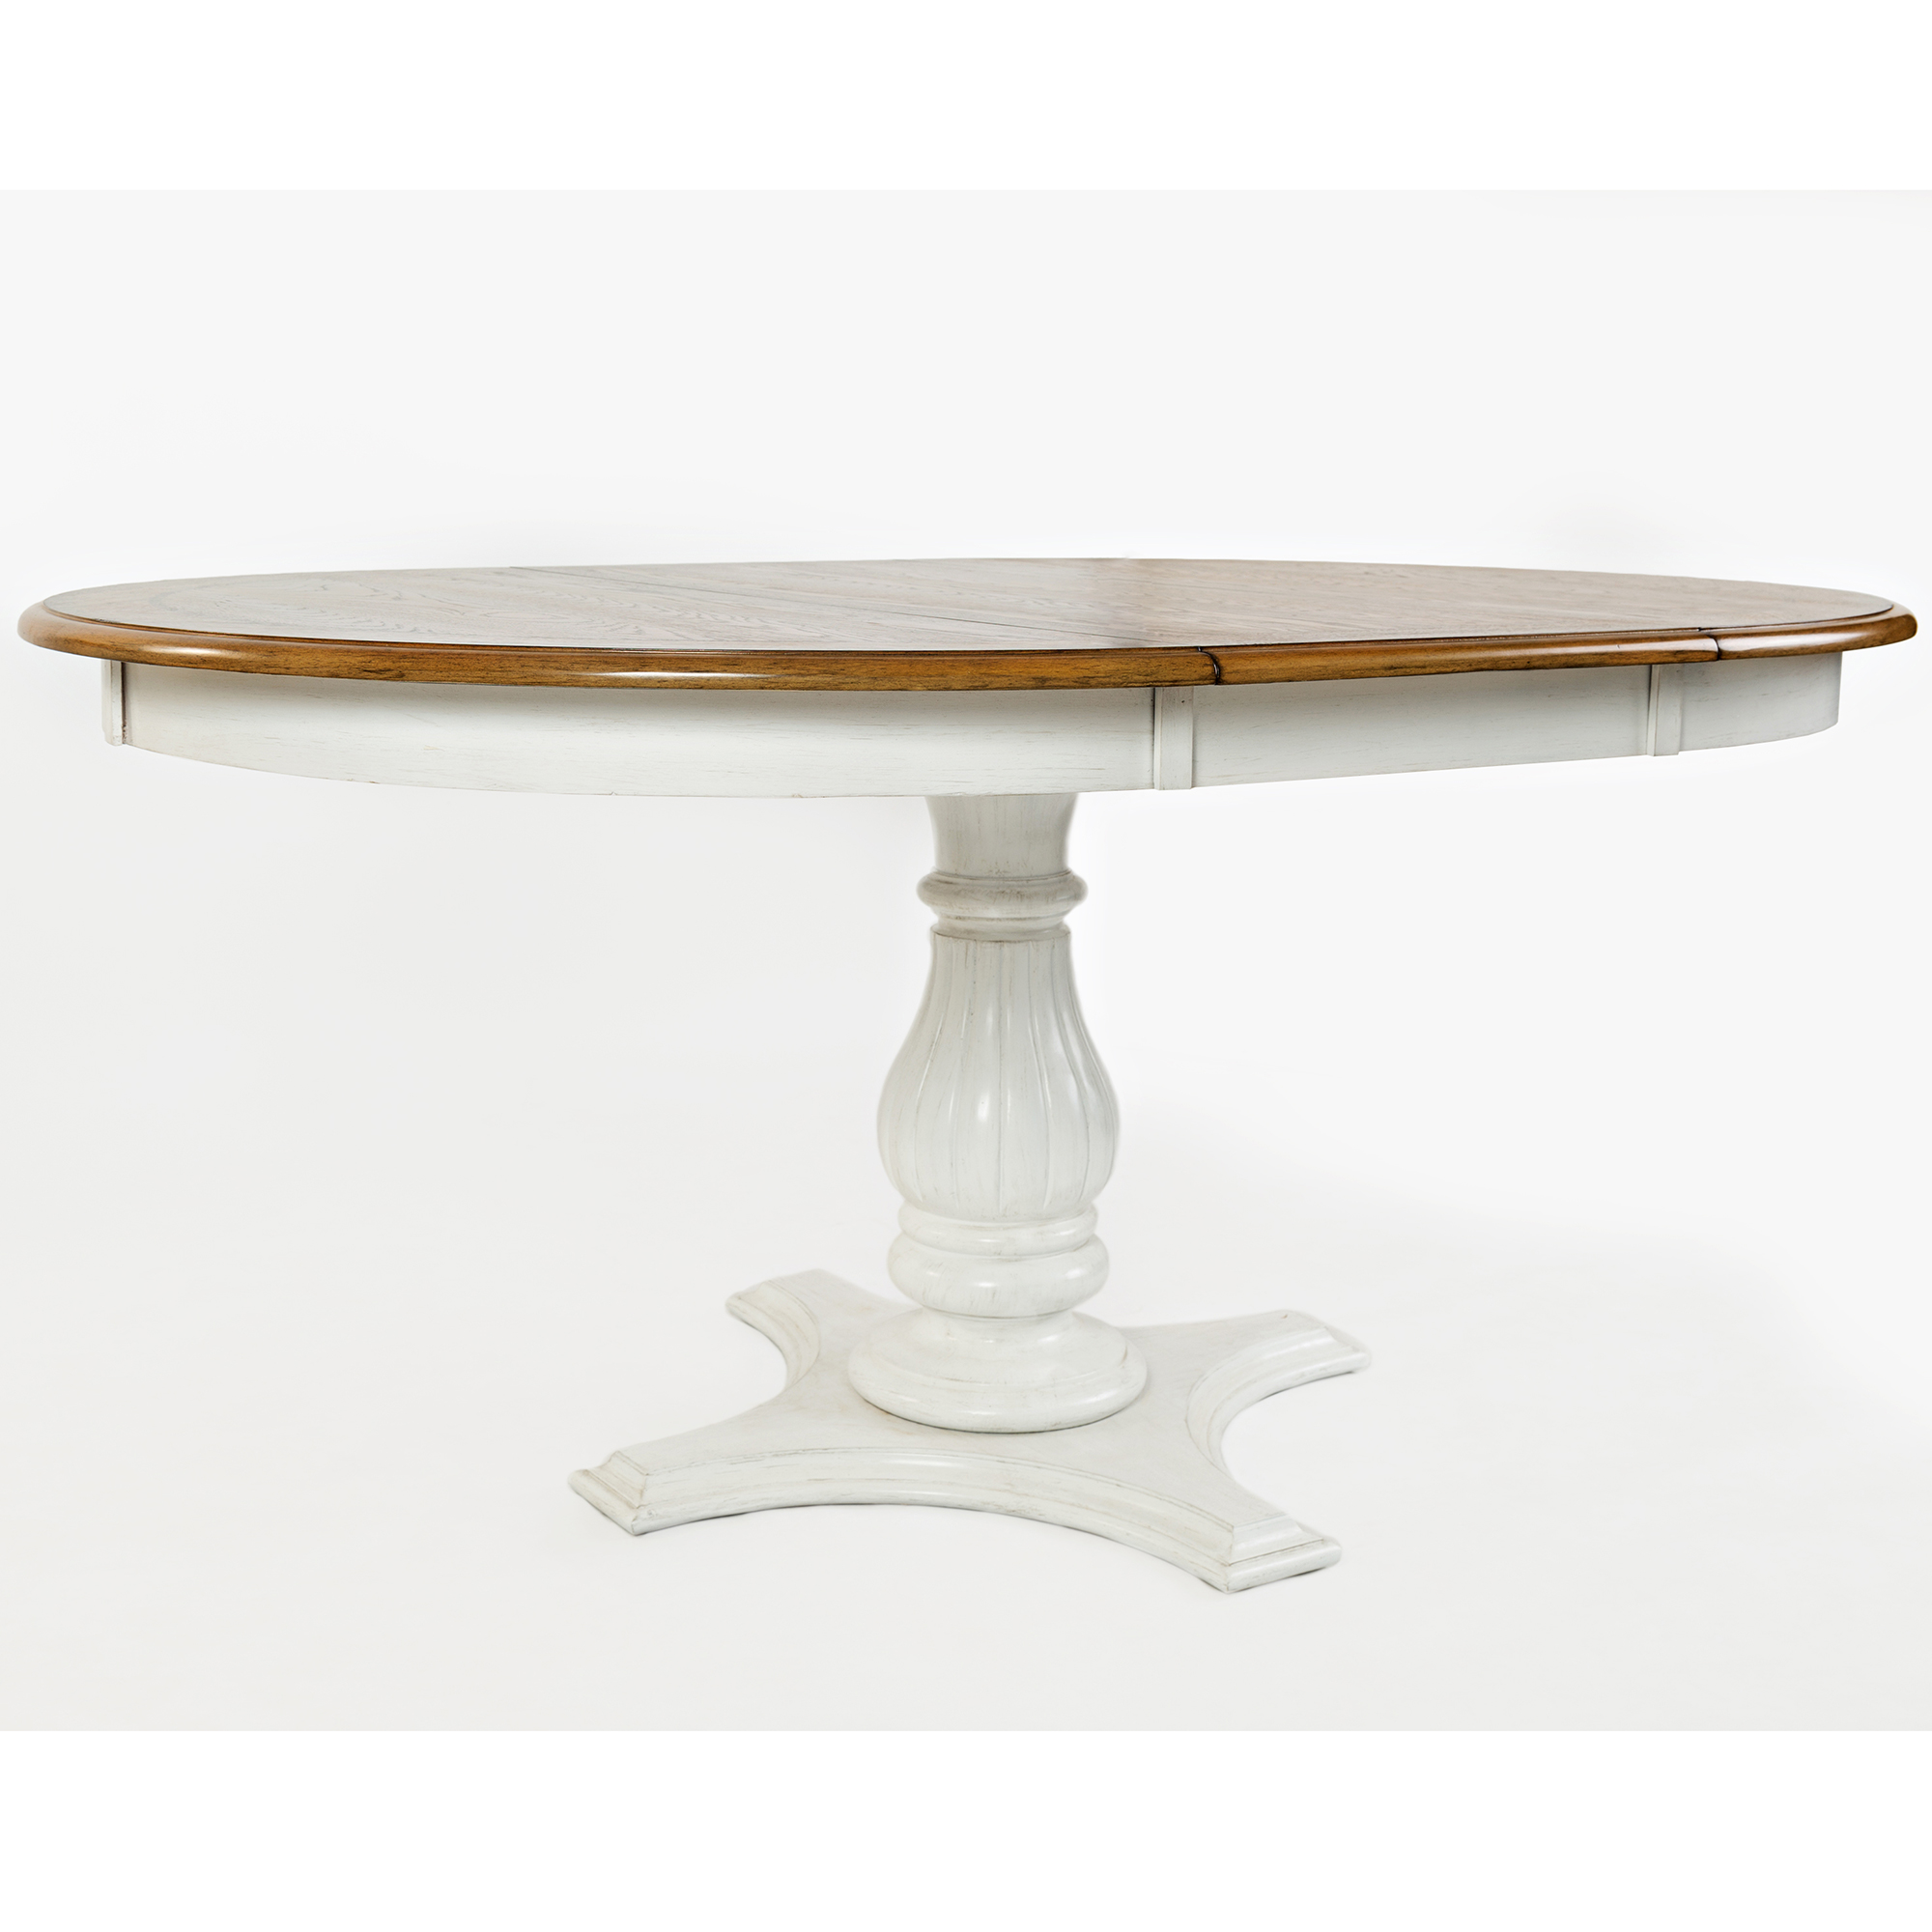 "Jofran 1776 66TBKT Castle Hill 48"" Round to 66"" Oval Dining Table"